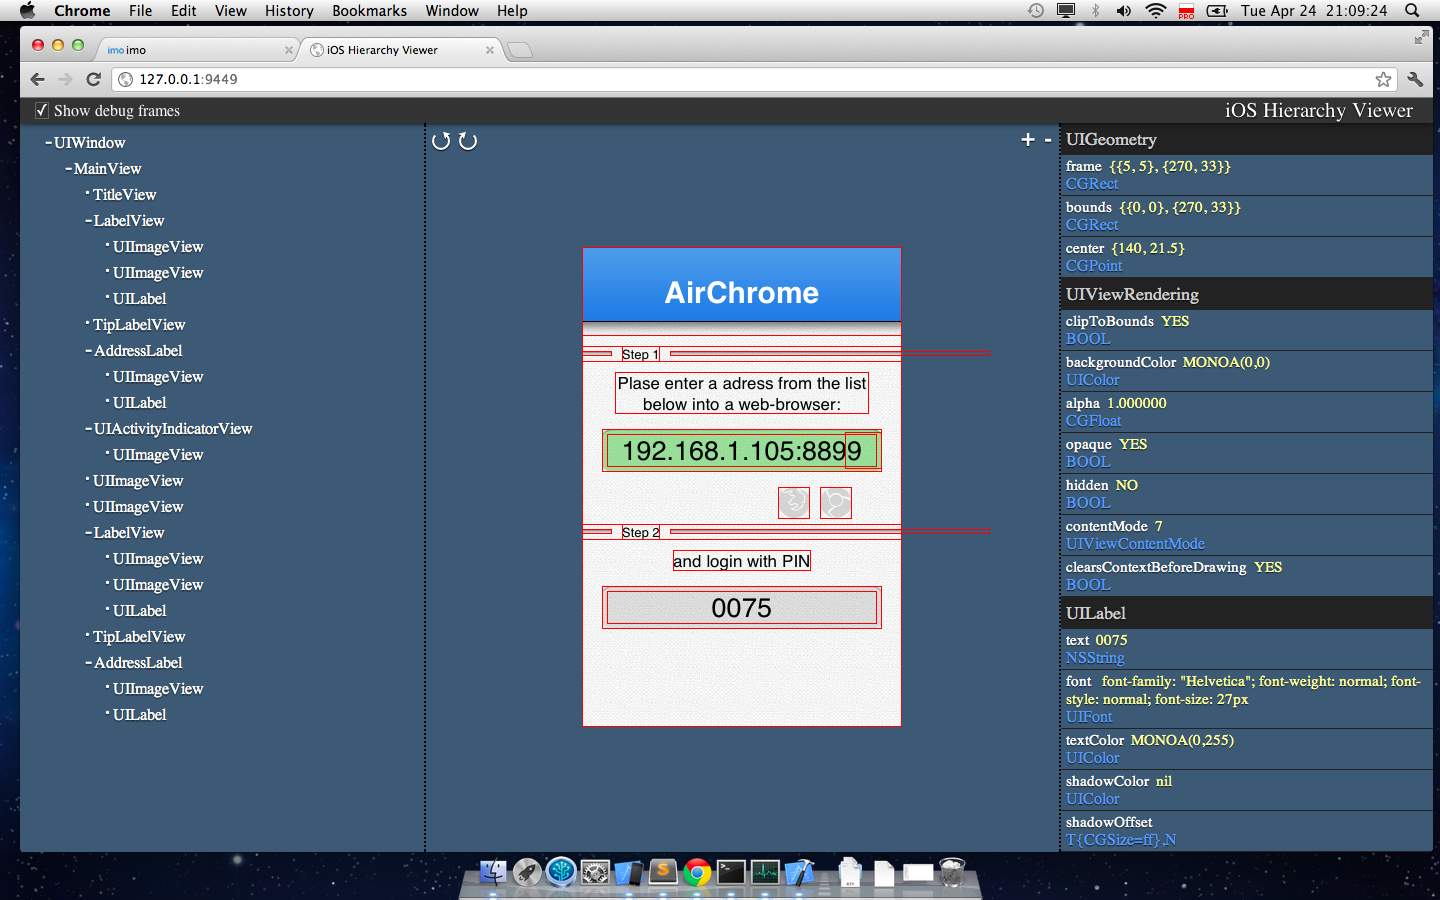 iOS-Hierarchy-Viewer on CocoaPods org